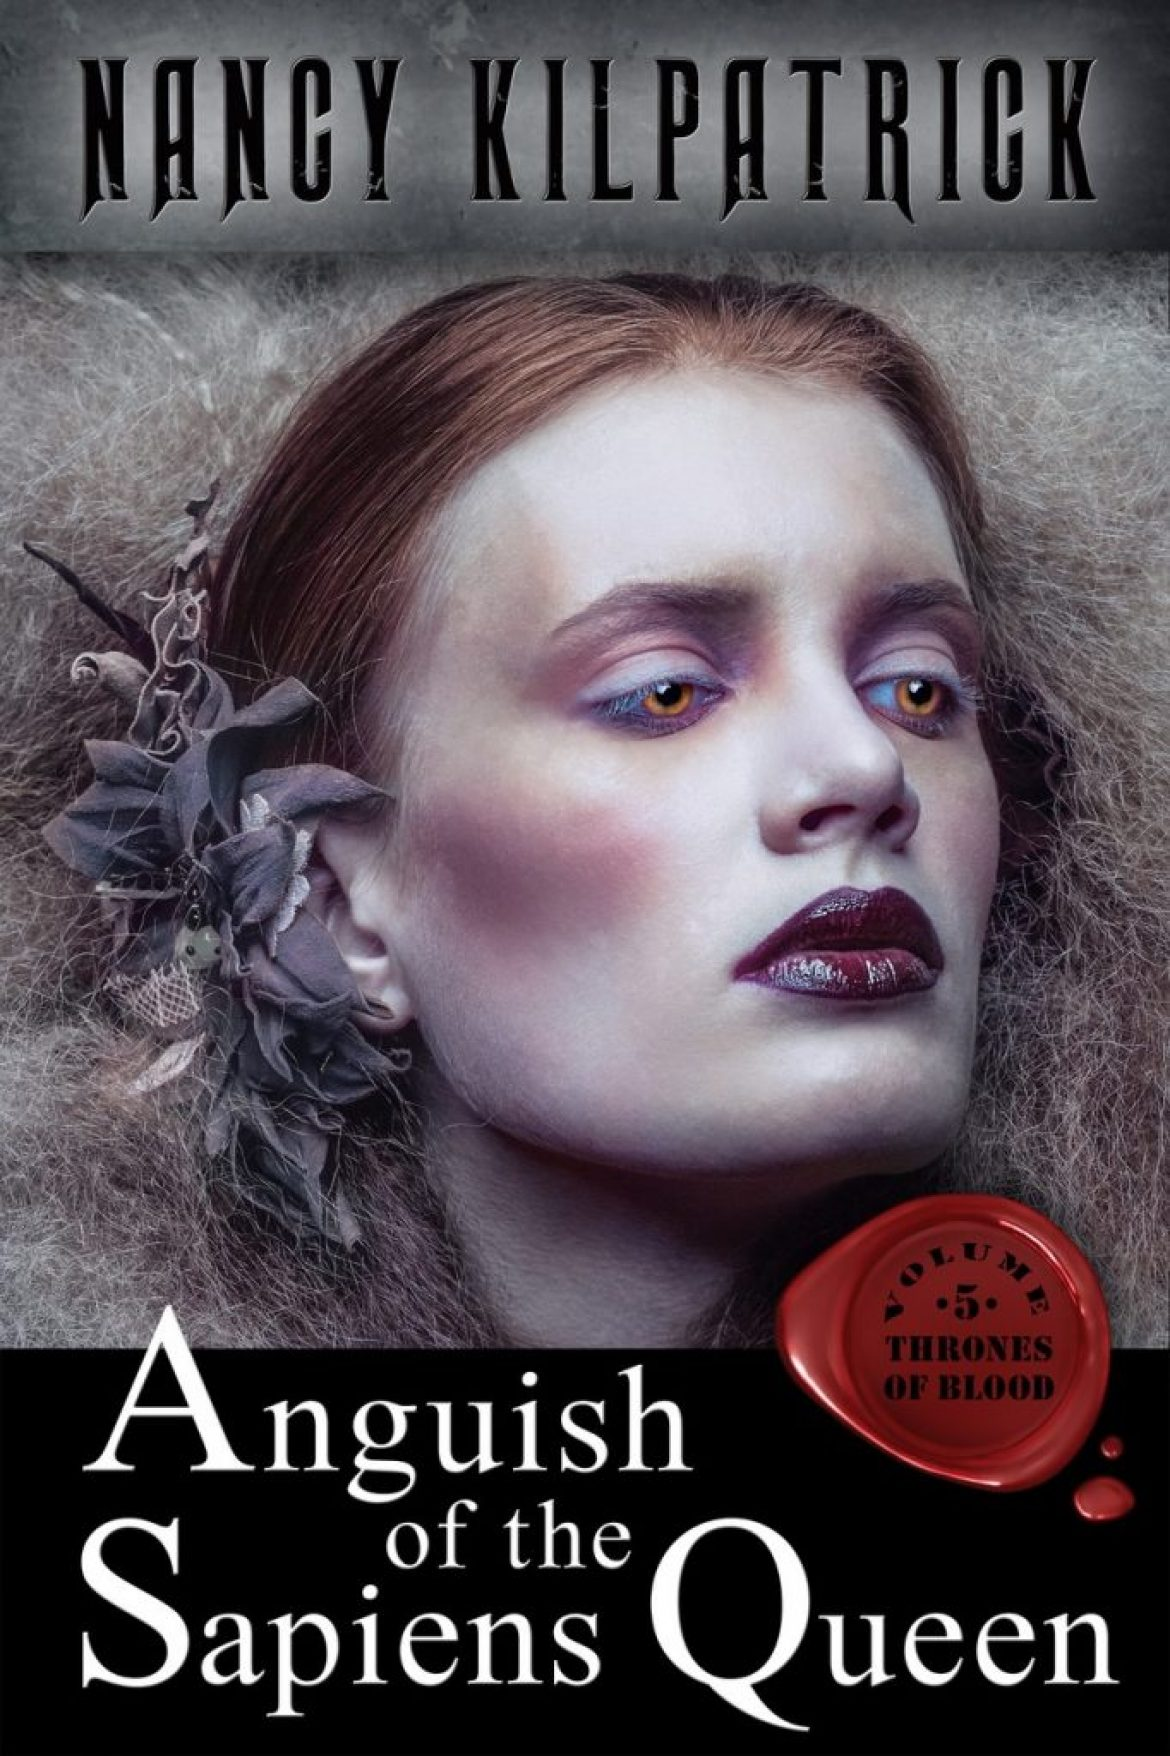 Anguish of the Sapiens Queen